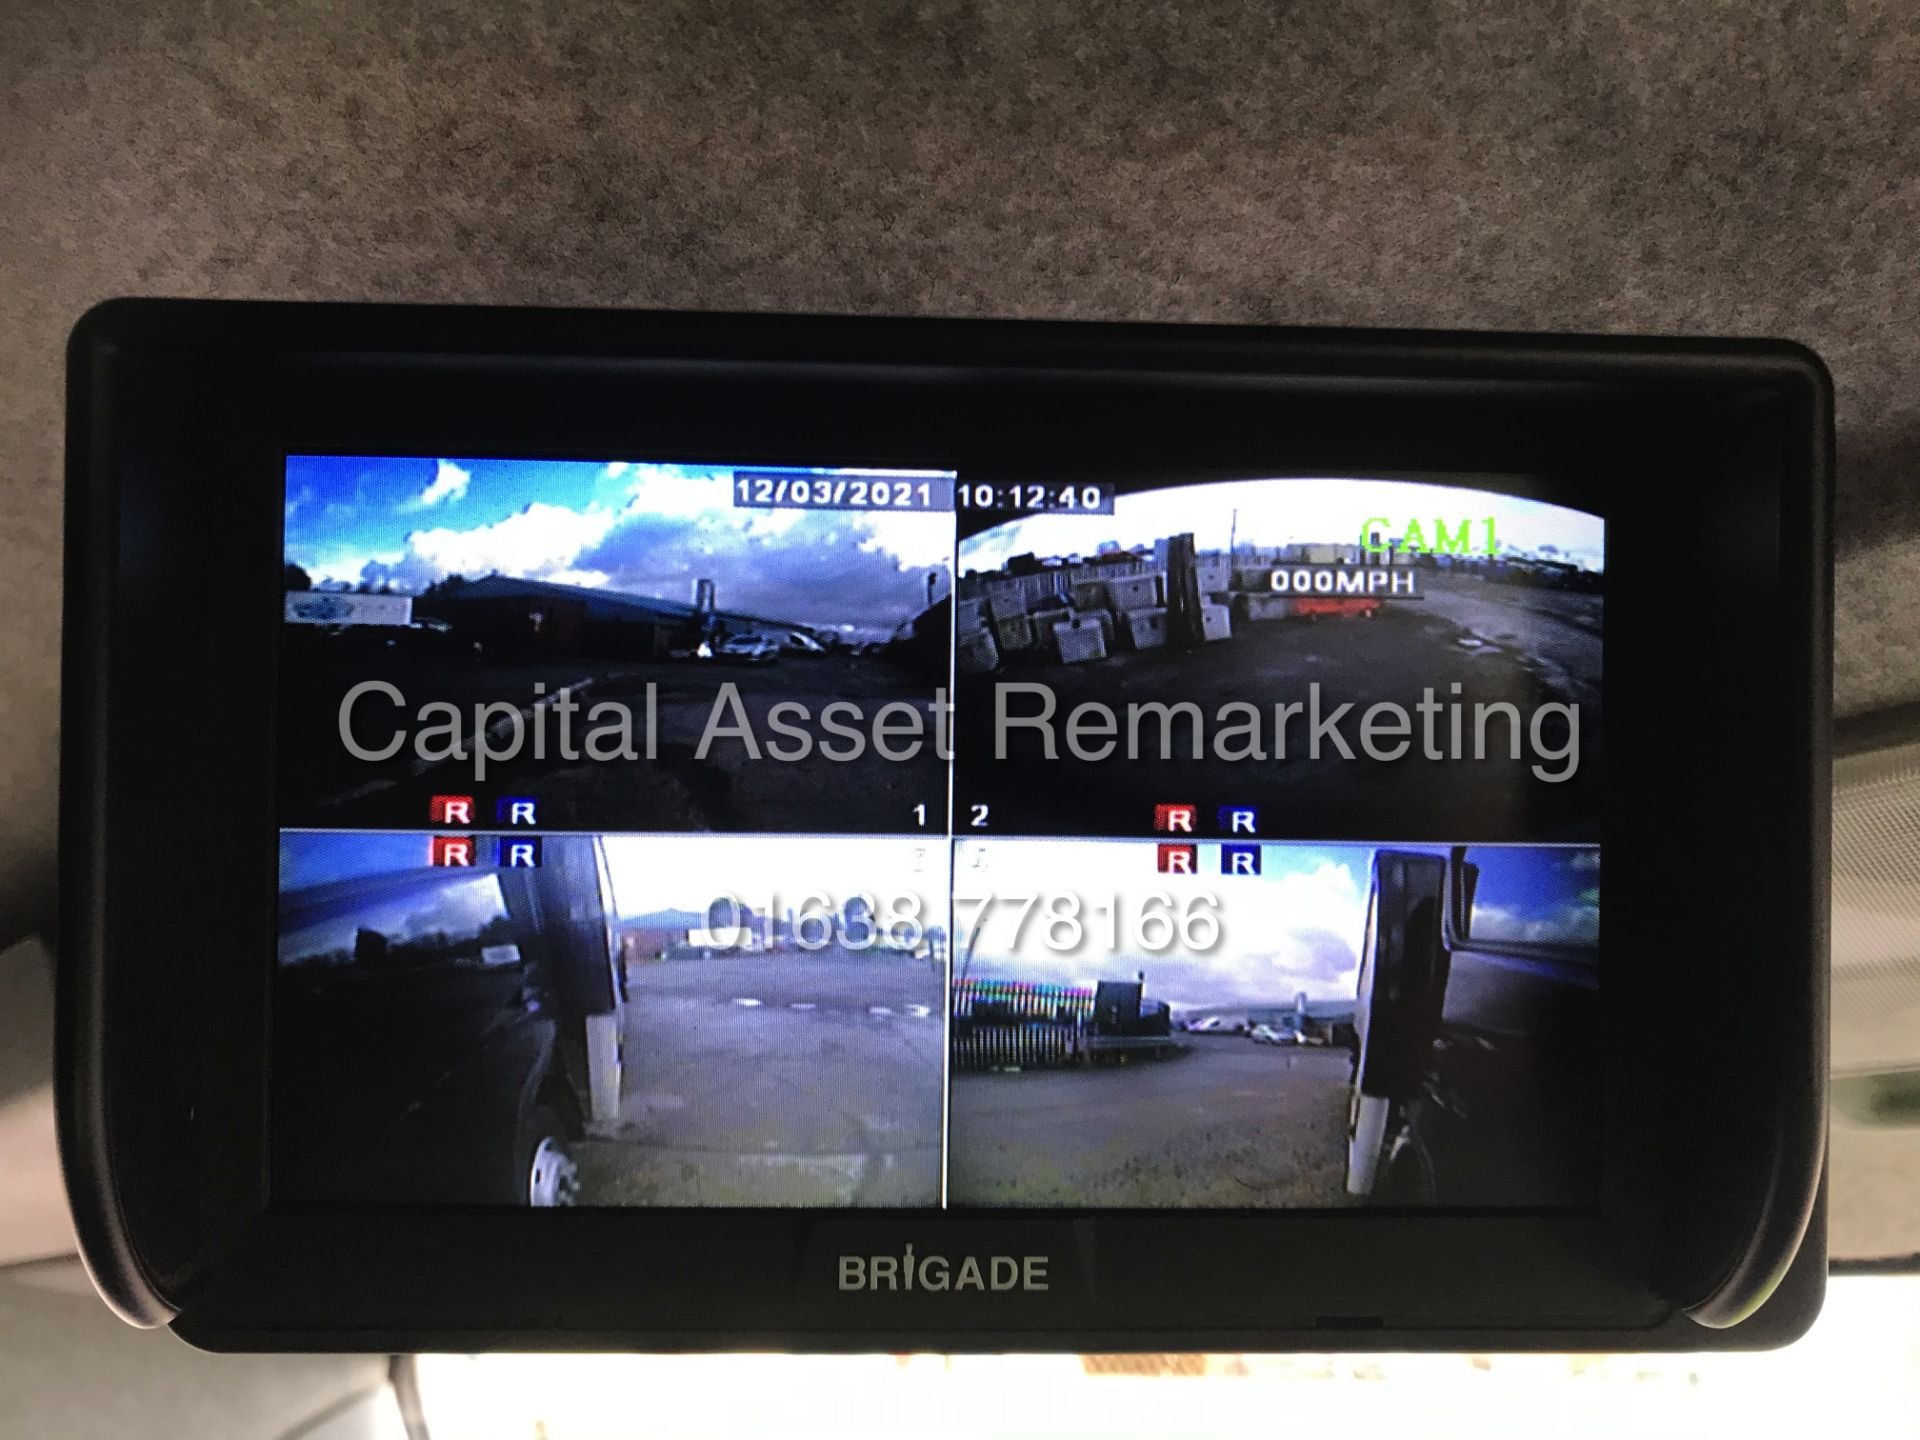 (ON SALE) MITSUBISHI FUSO CANTER 7C18 (16 REG) 1 OWNER *EURO 6* AD-BLUE - 4 WAY CAMERA SYSTEM - Image 18 of 20